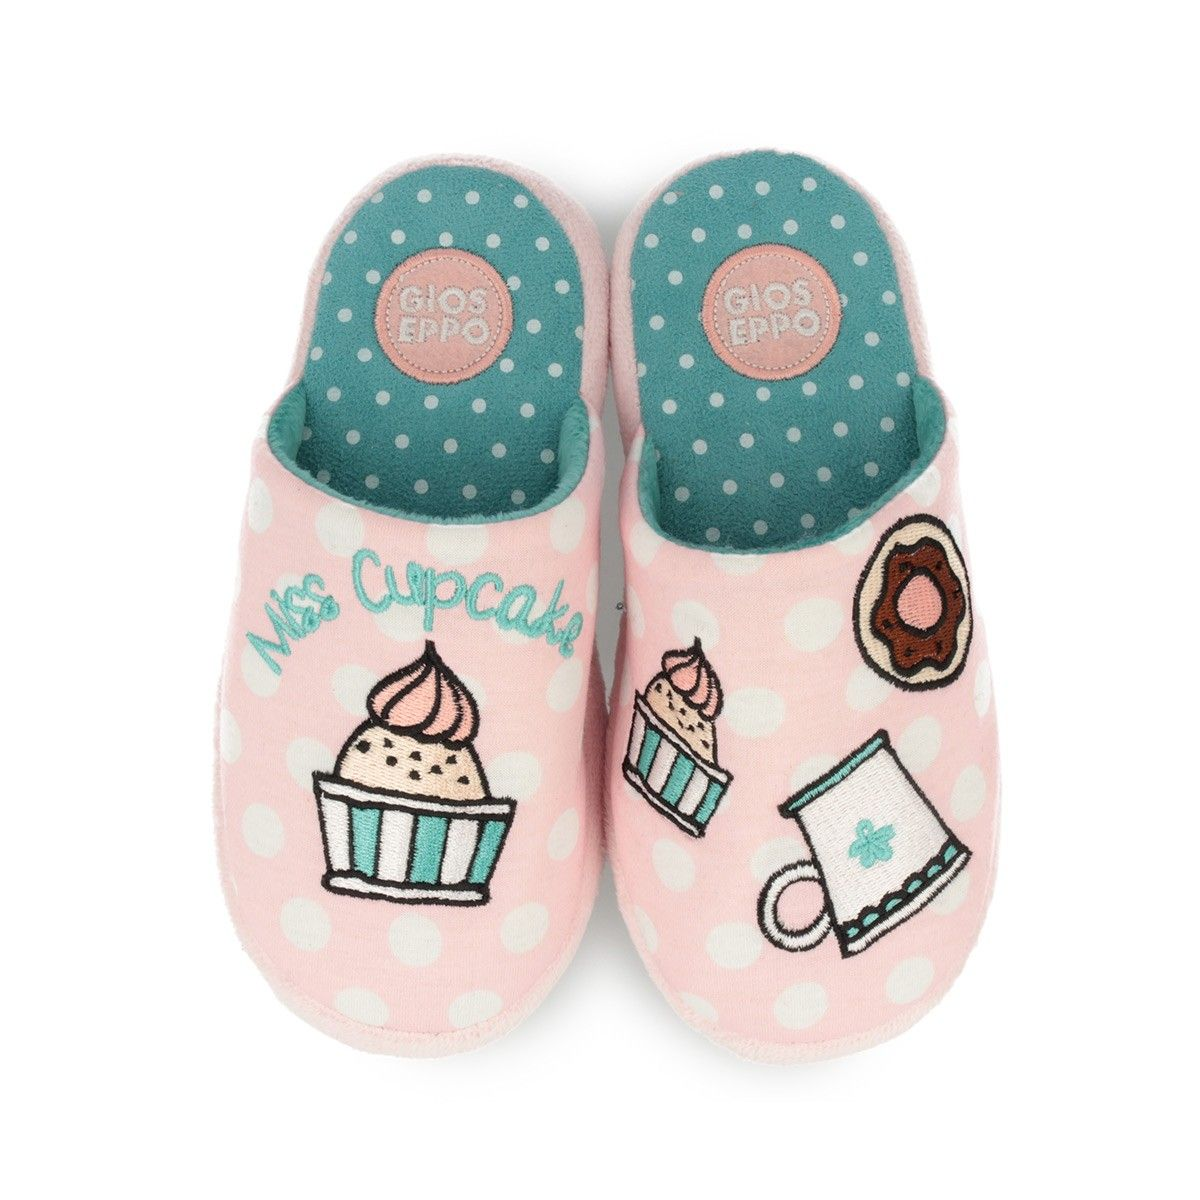 3e456810b5 Printed slippers - QUEEN in 2019 | Slippers | Bedroom slippers, Slippers,  Shoes